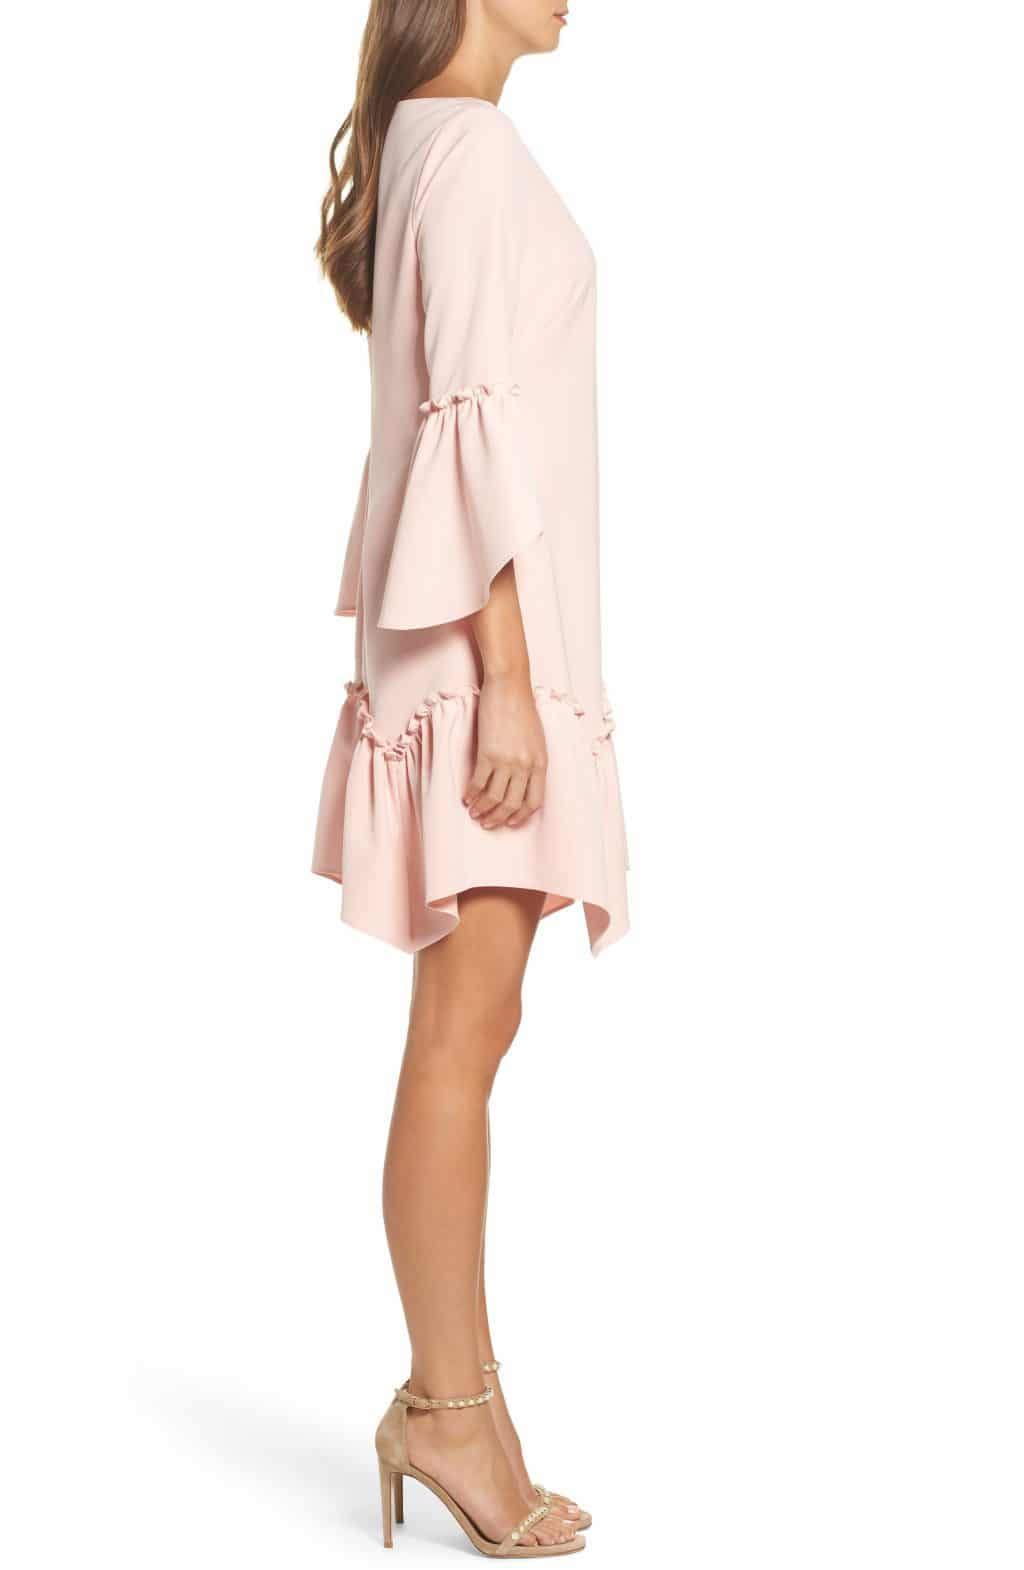 ELIZA J Ruffle Hem Shift Blush Dress - We Select Dresses